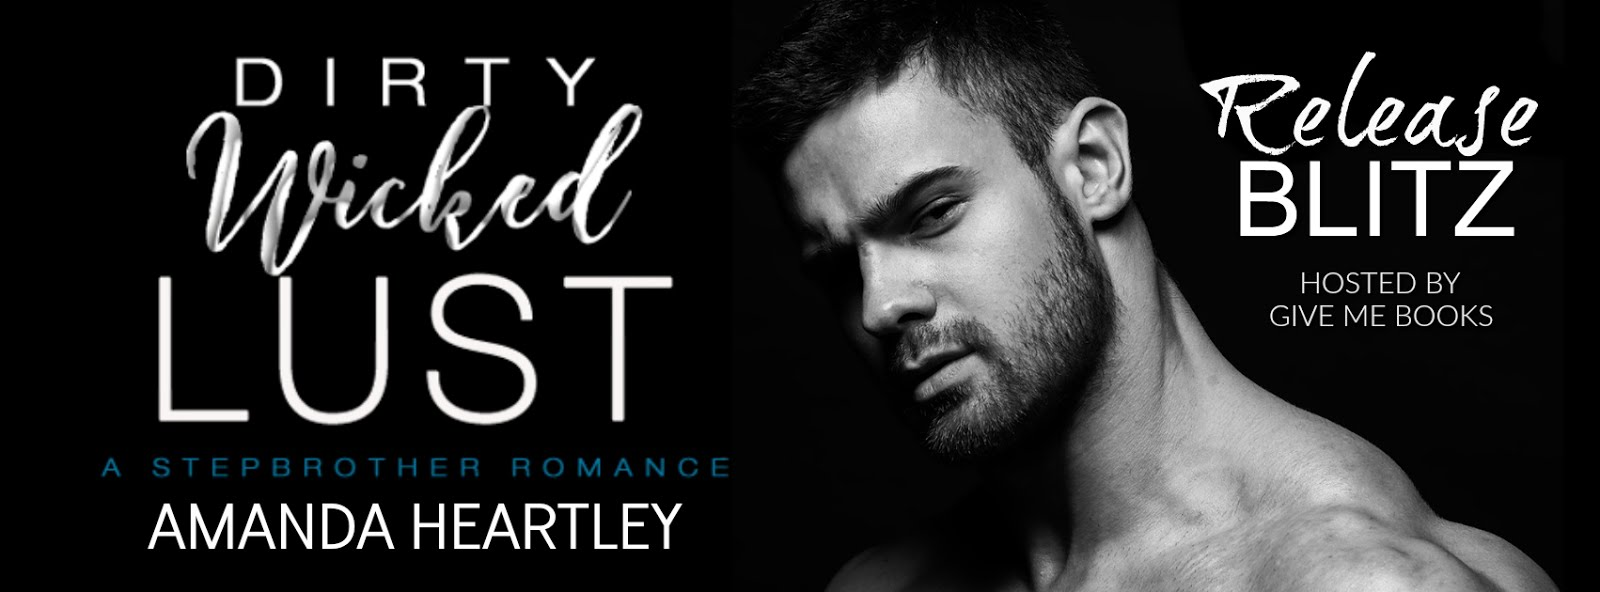 Dirty Wicked Lust Release Blitz